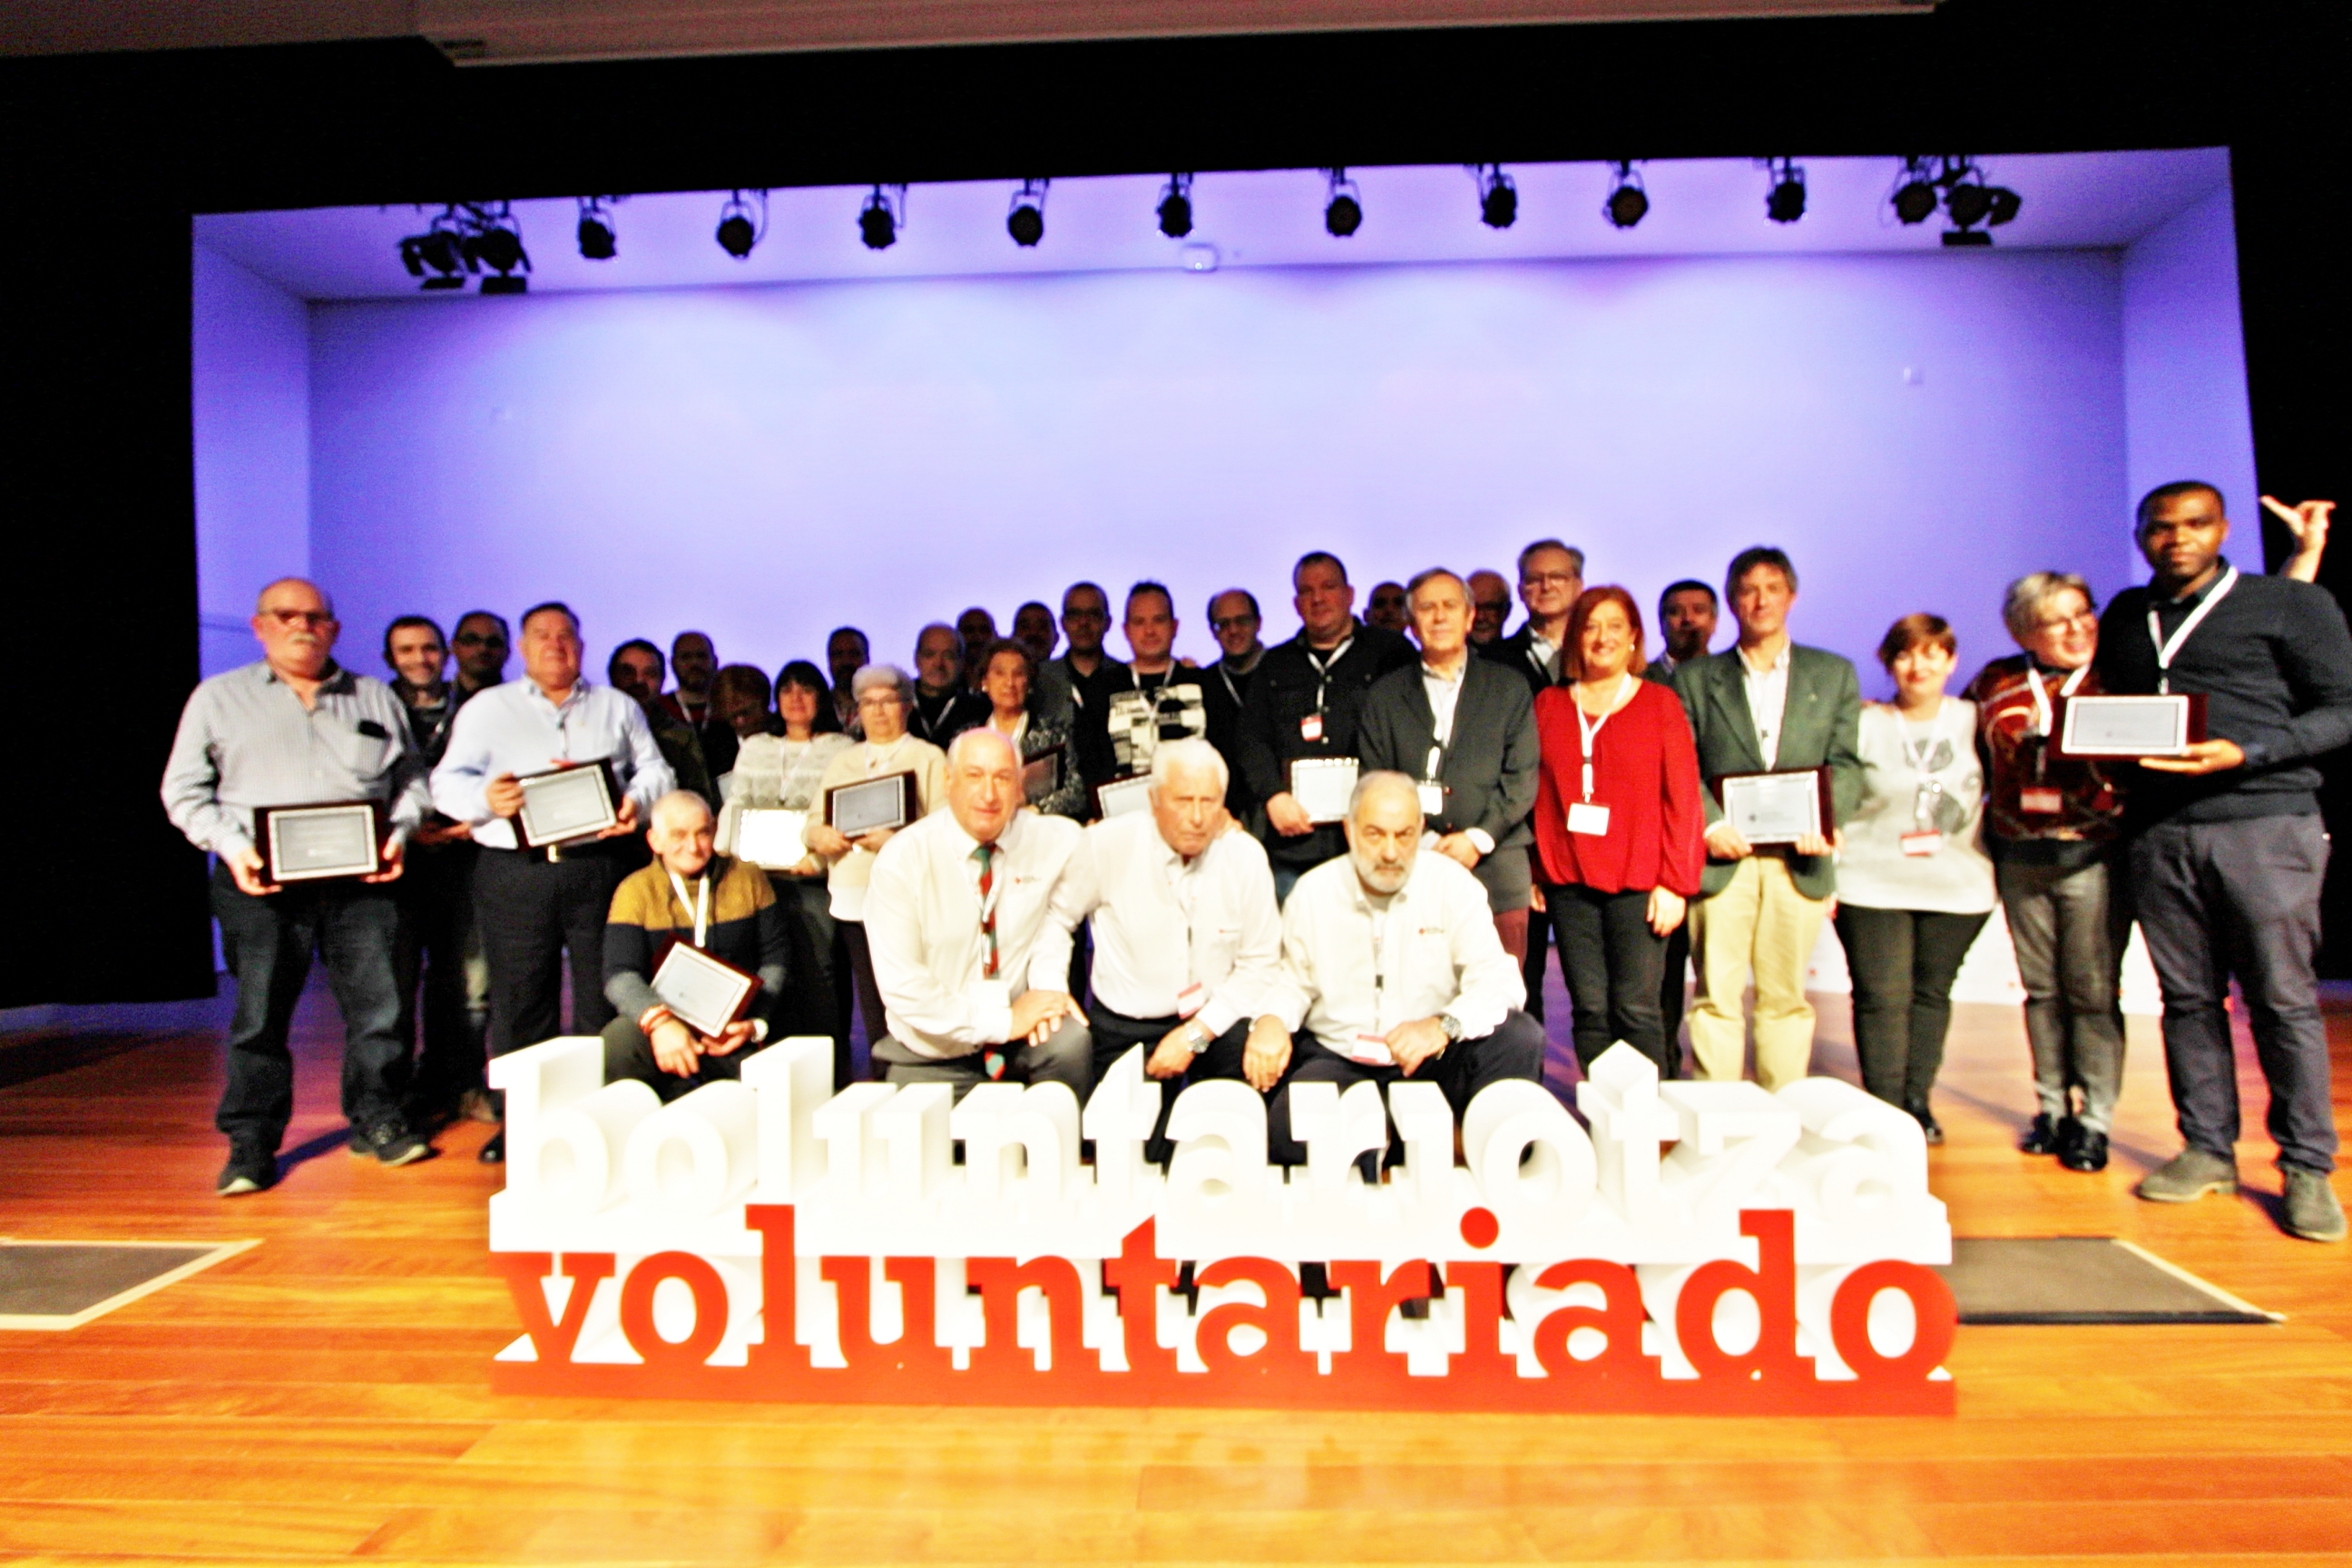 24_11_18_GGE_Voluntariado__9_.jpg